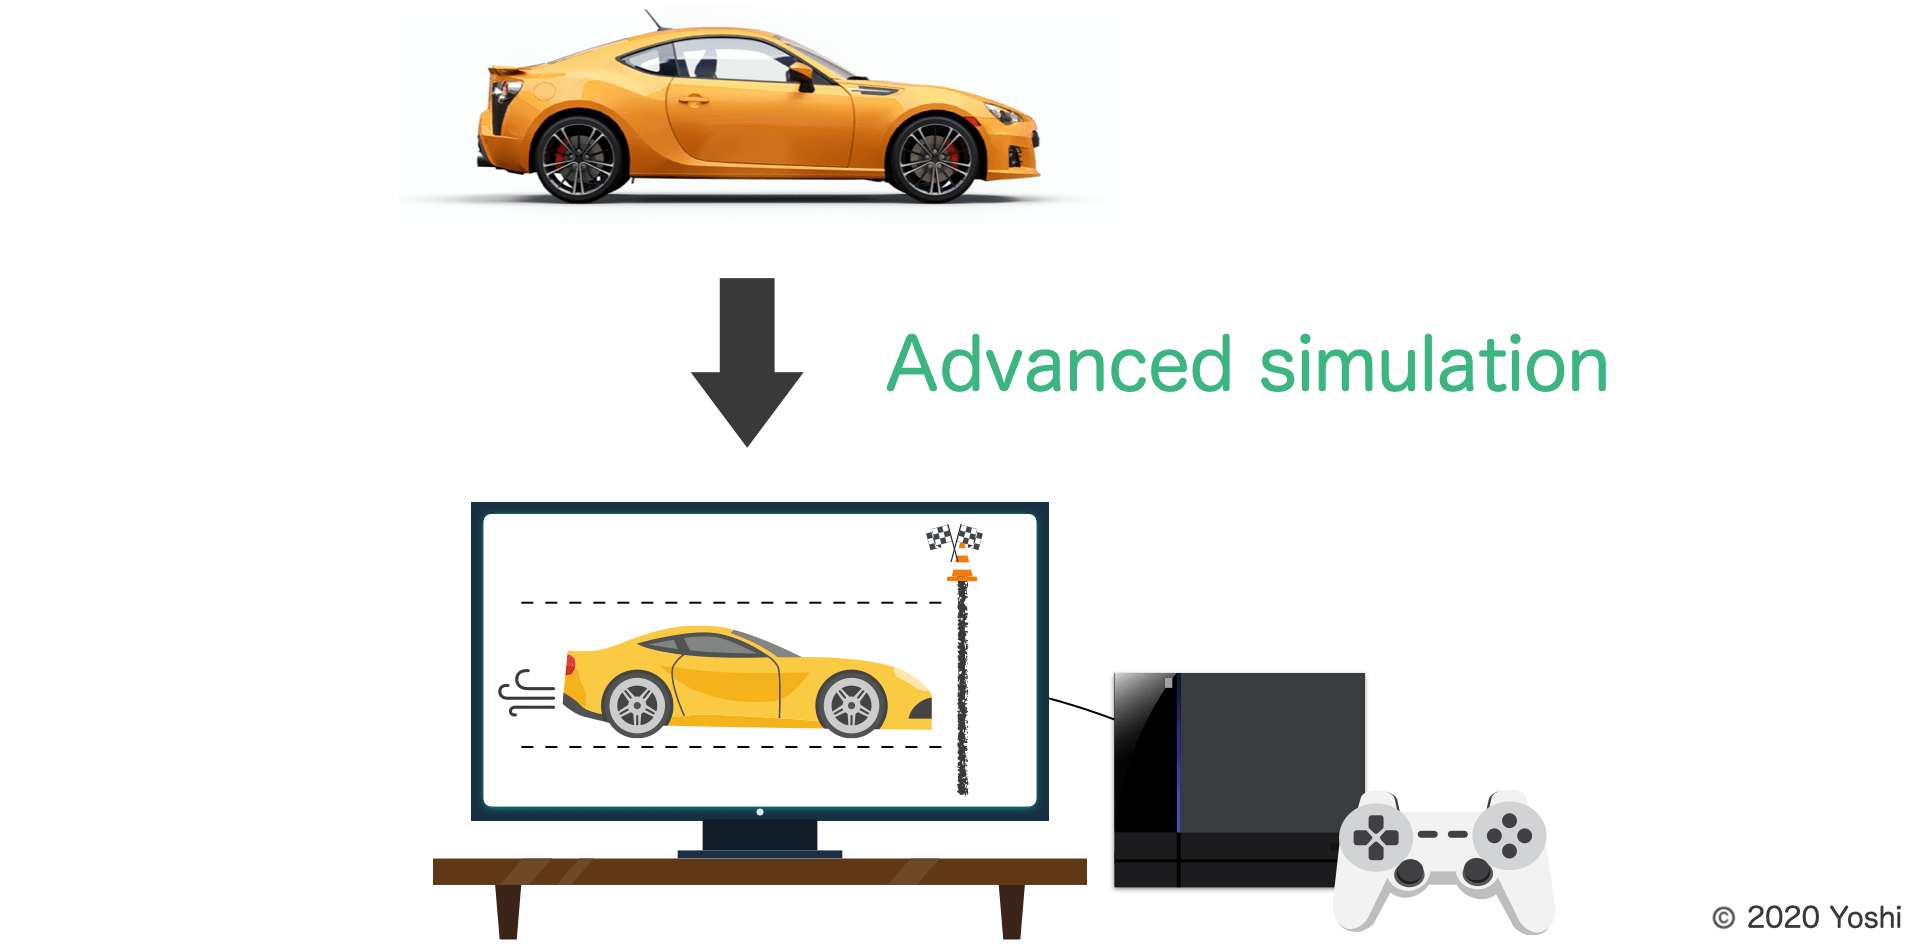 Information Technology is a technology of advanced simulation